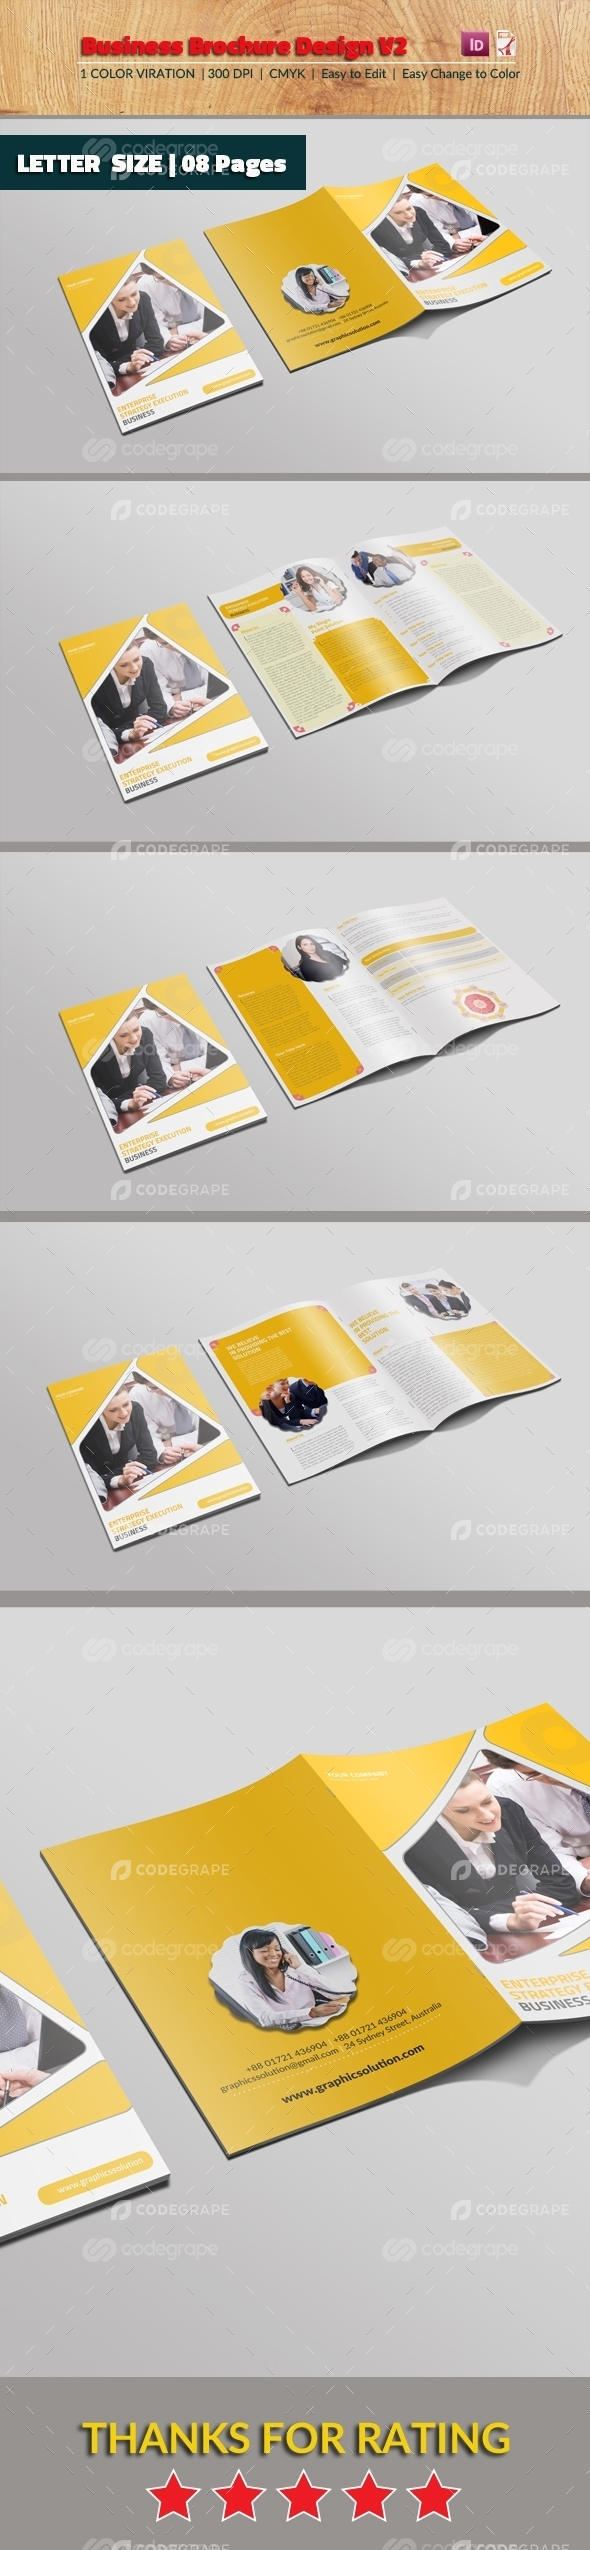 Business Brochure Design v2